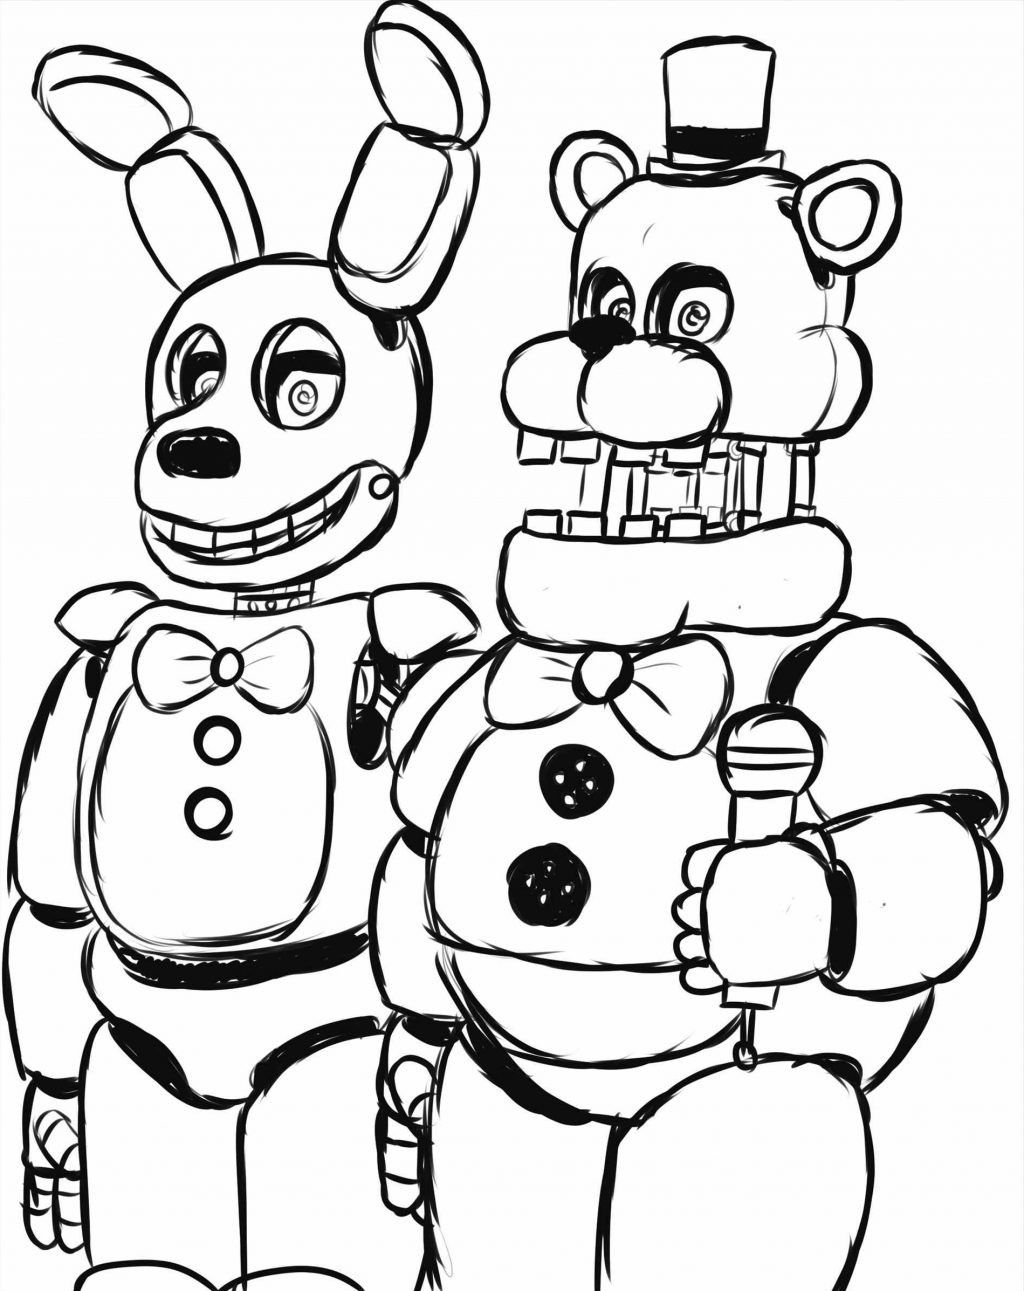 Spring Trap Coloring Page In 2020 Minion Coloring Pages Coloring Pages Fnaf Coloring Pages